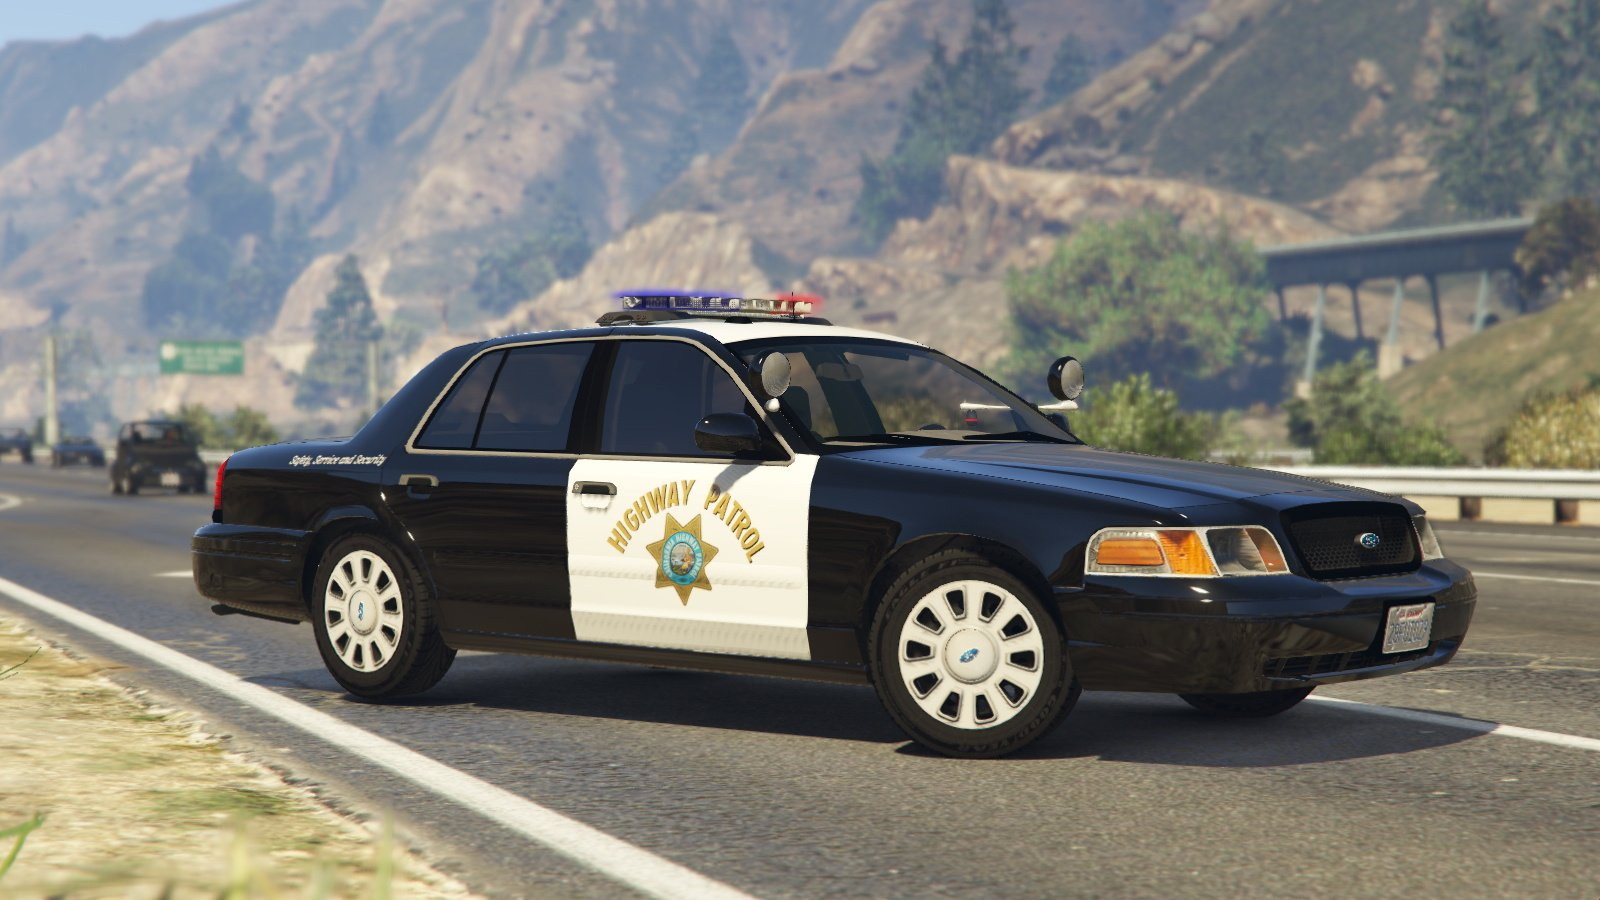 1999 Ford Crown Victoria Lapd Highway Patrol Paintjob Gta5 Mods Com